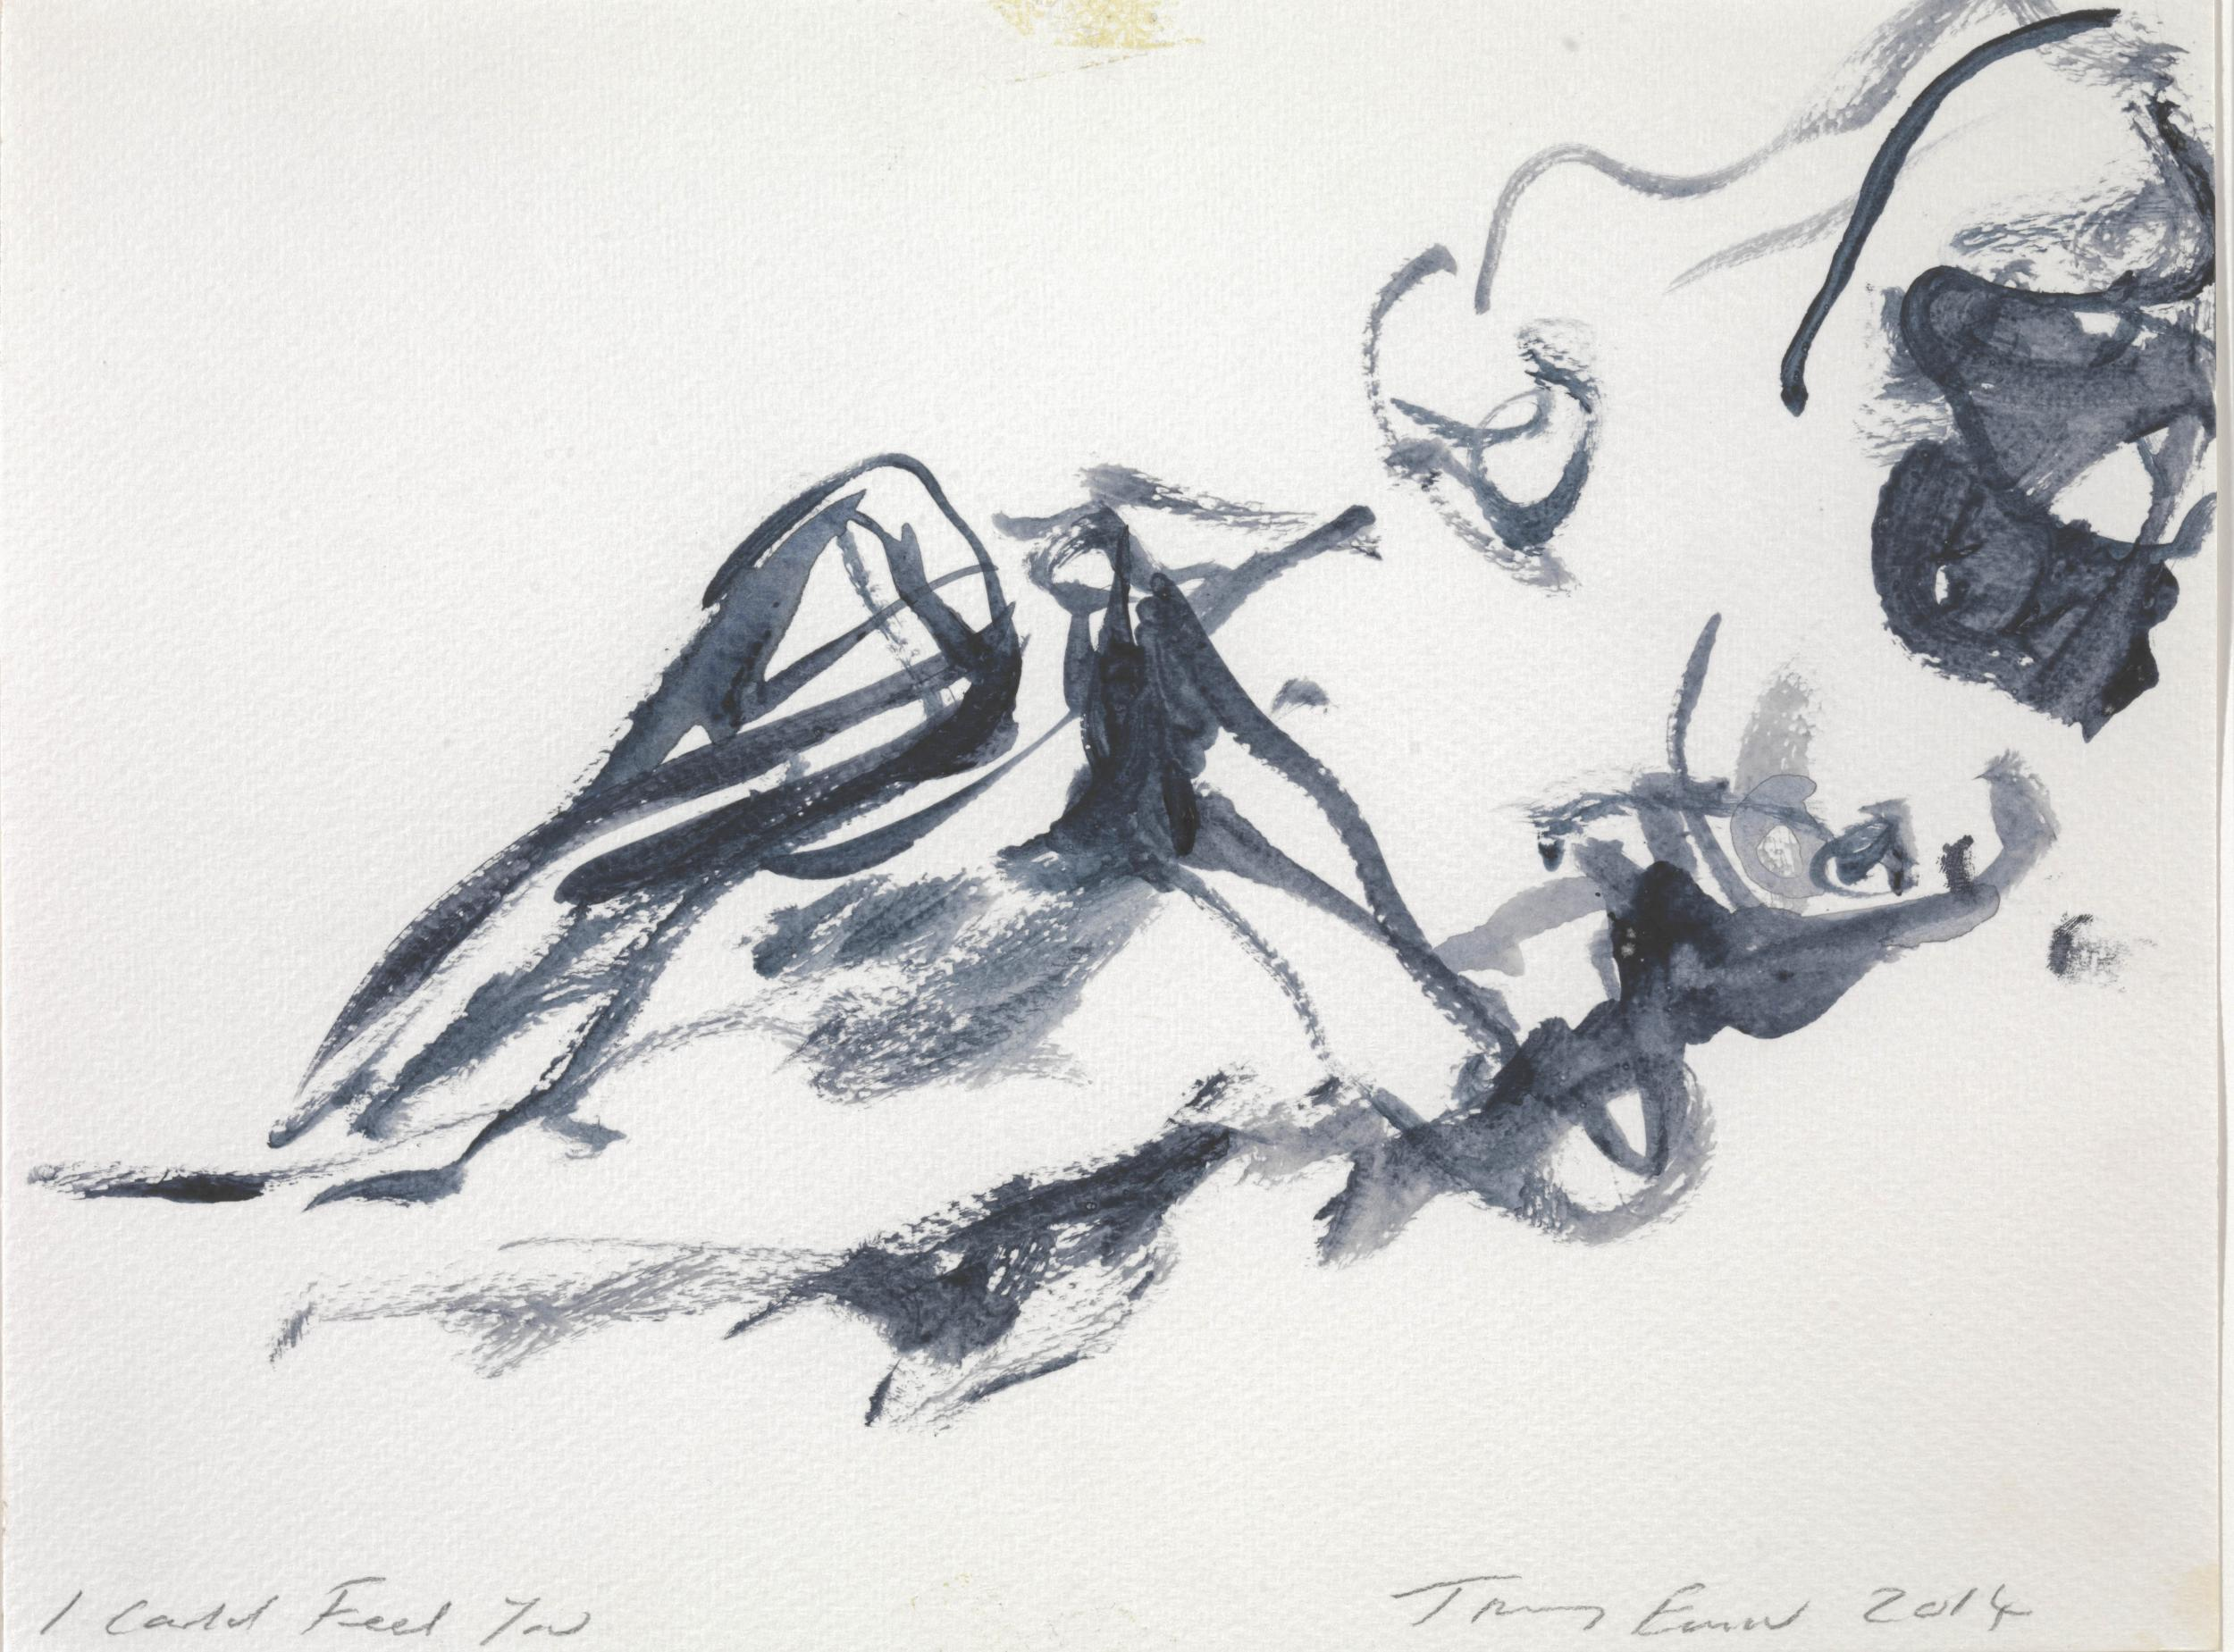 Tracey Emin's I Could Feel You (2014) at Tate Britain, London